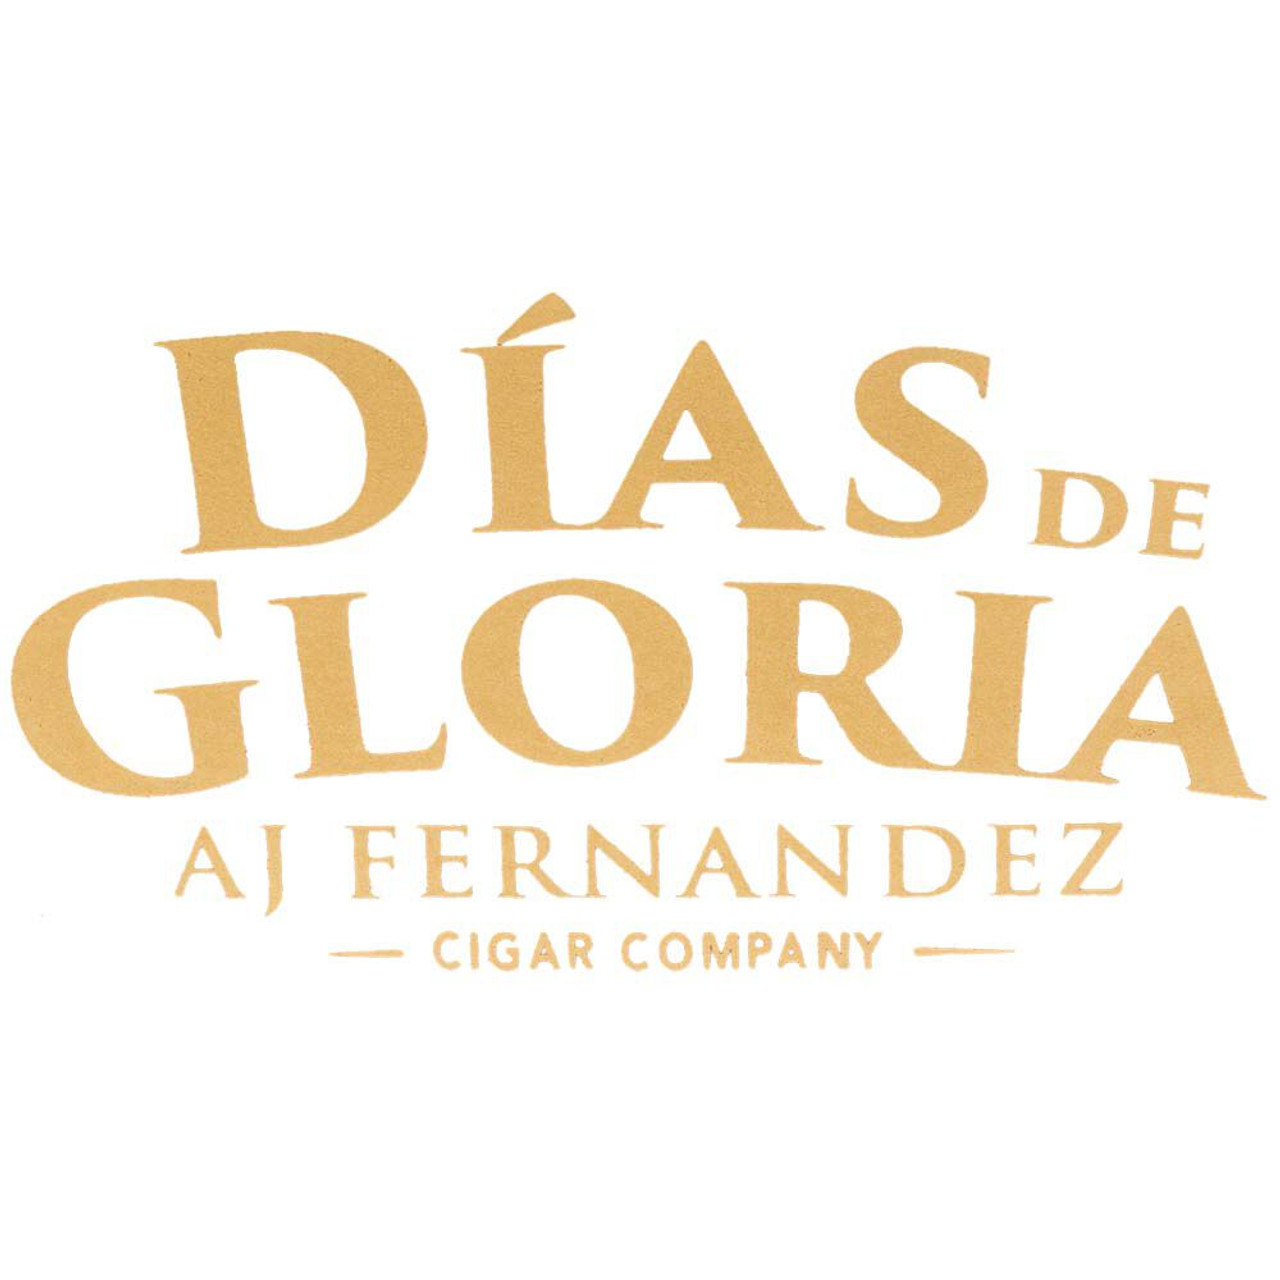 AJ Fernandez Dias de Gloria Gordo Cigars - 6.0 x 60 (Box of 20)